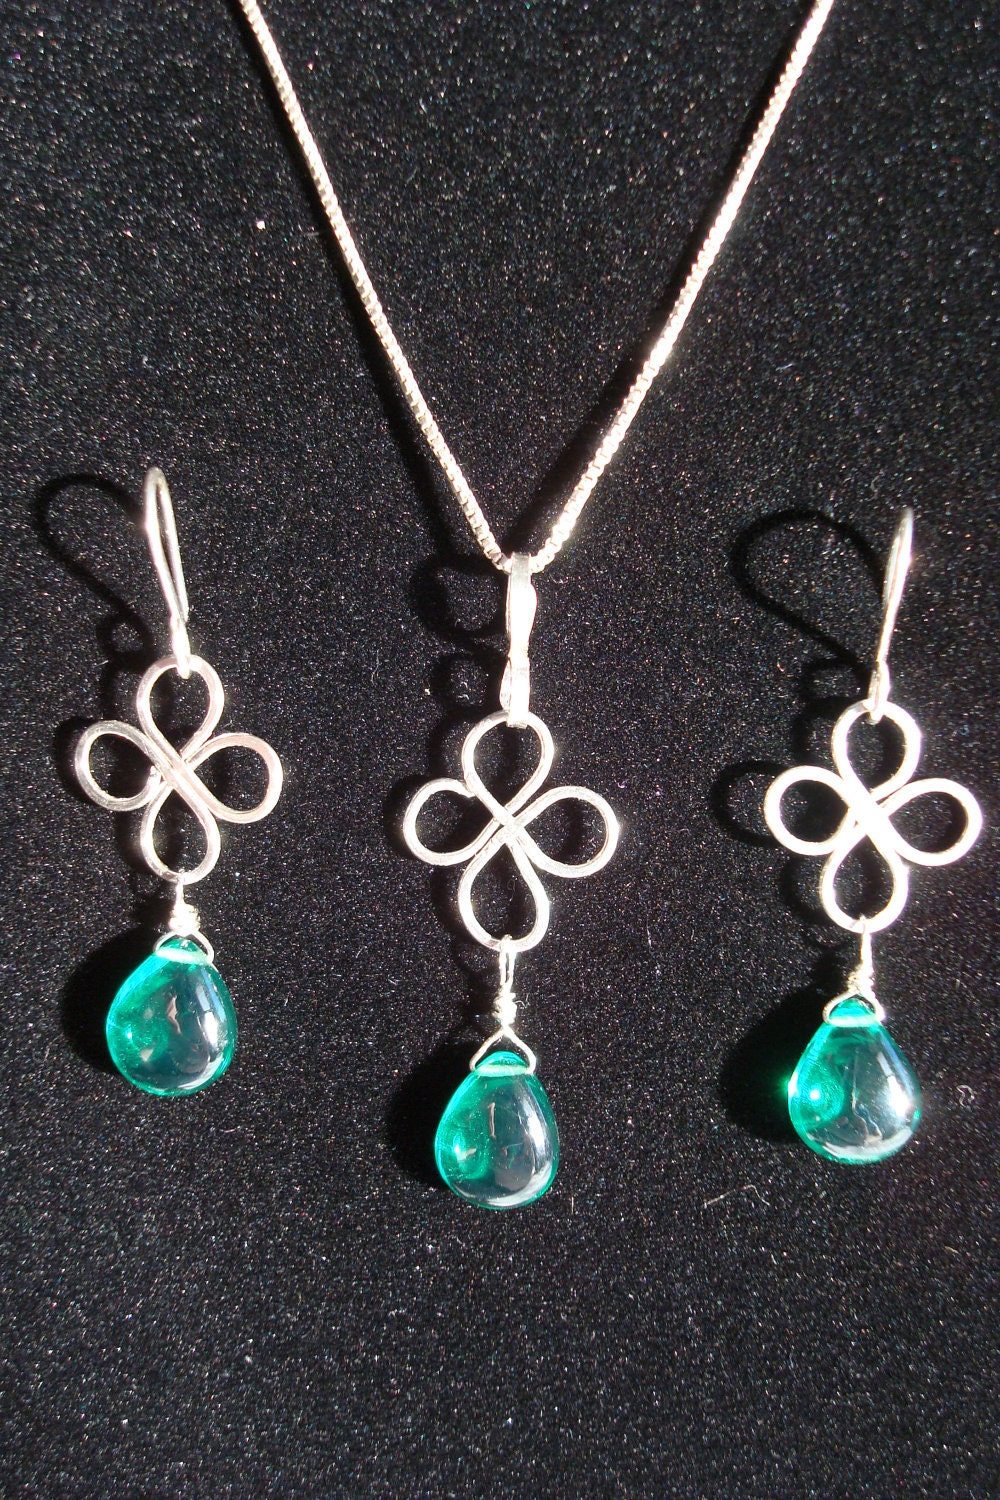 Pendant & Earrings Set- Wire Wrap, Sterling Silver, Green, Emerald Green Hydro Quartz, Briolette